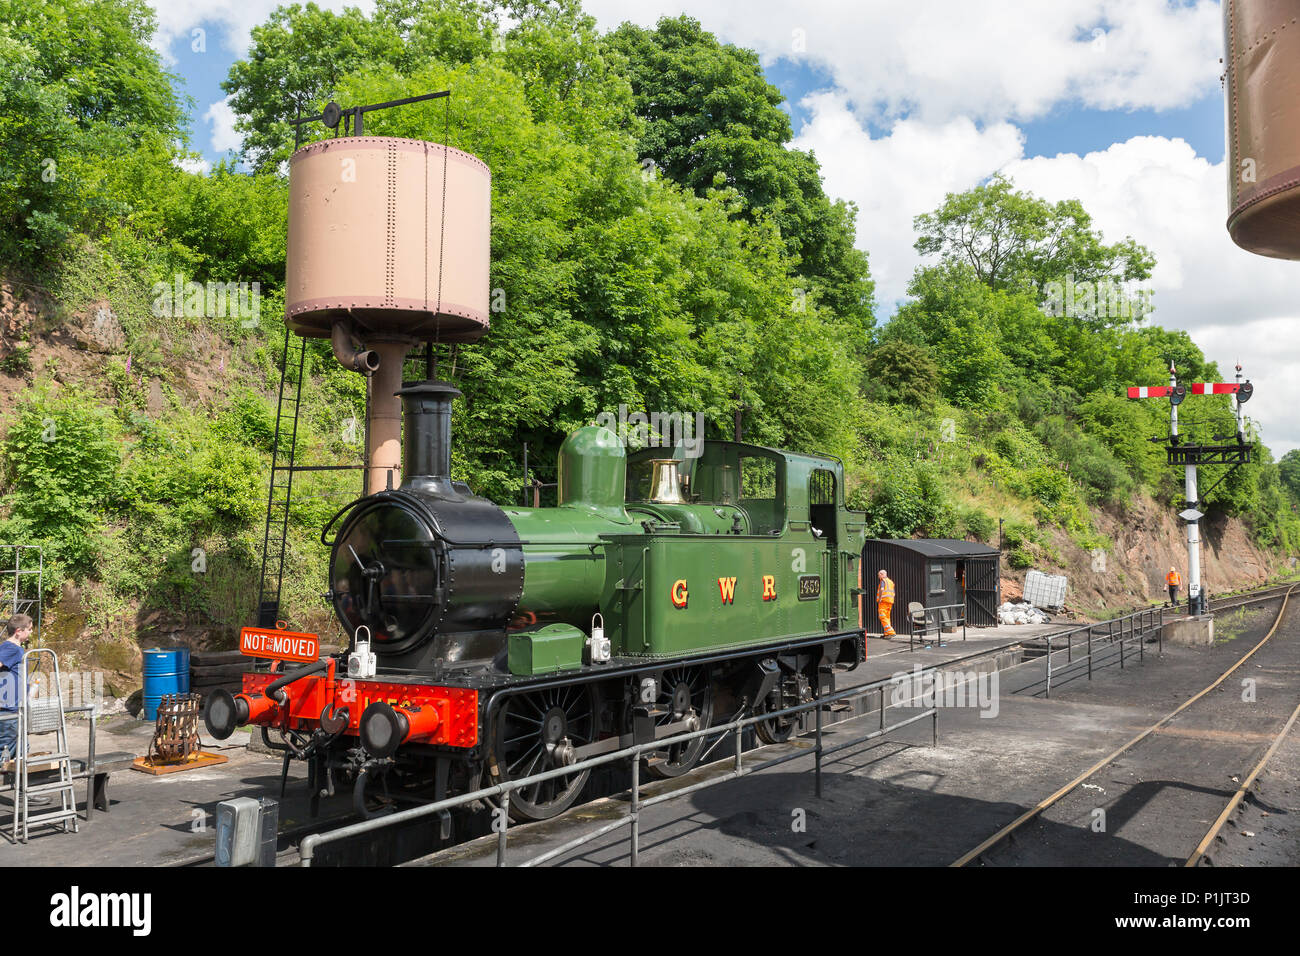 Preserved GWR steam locomotive 1450 undergoing maintenance service work, trackside at Severn Valley Railway's Bewdley station. Summer afternoon in sun. Stock Photo